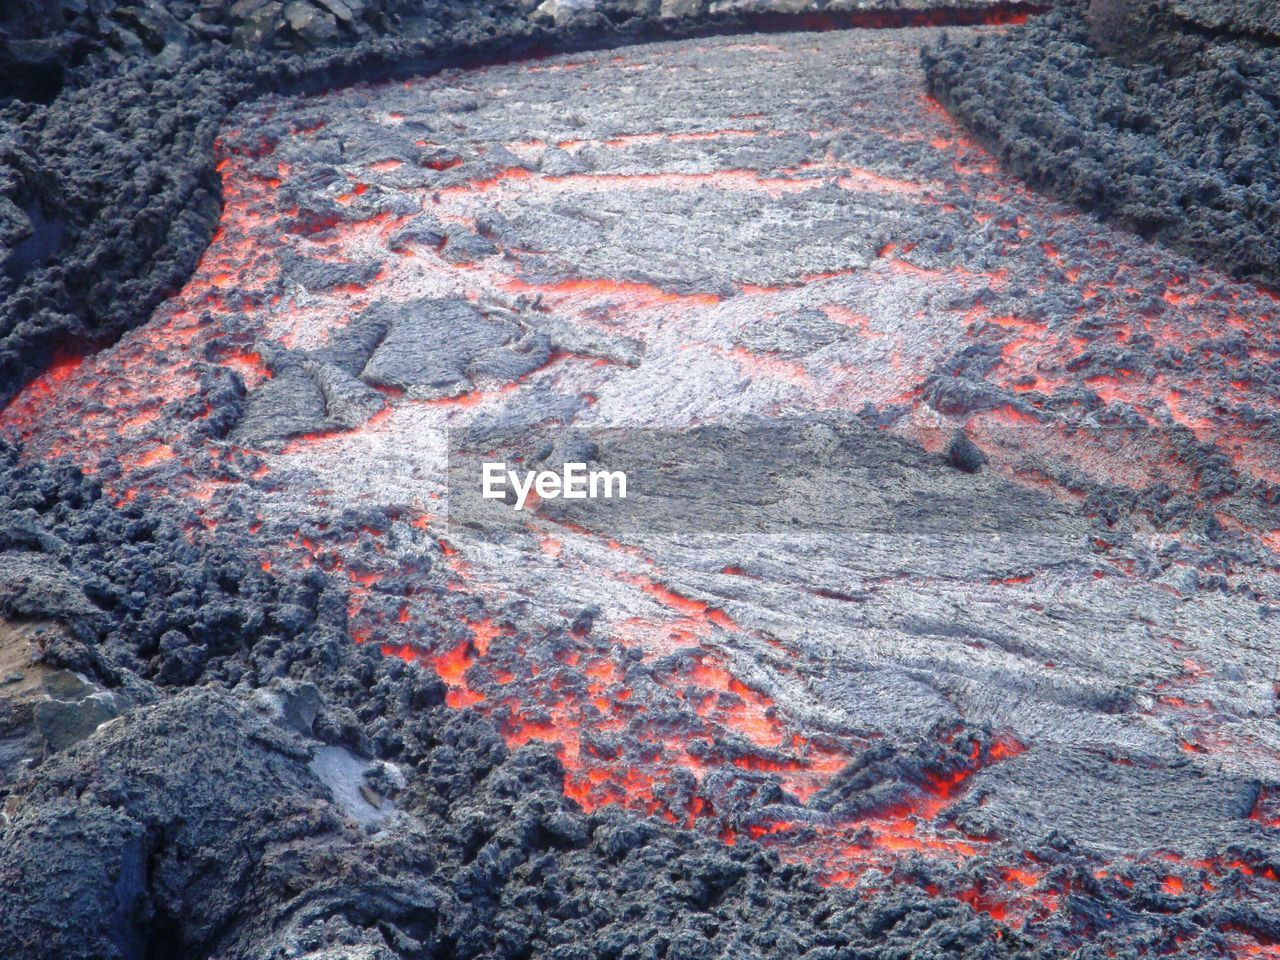 High Angle View Of Lava